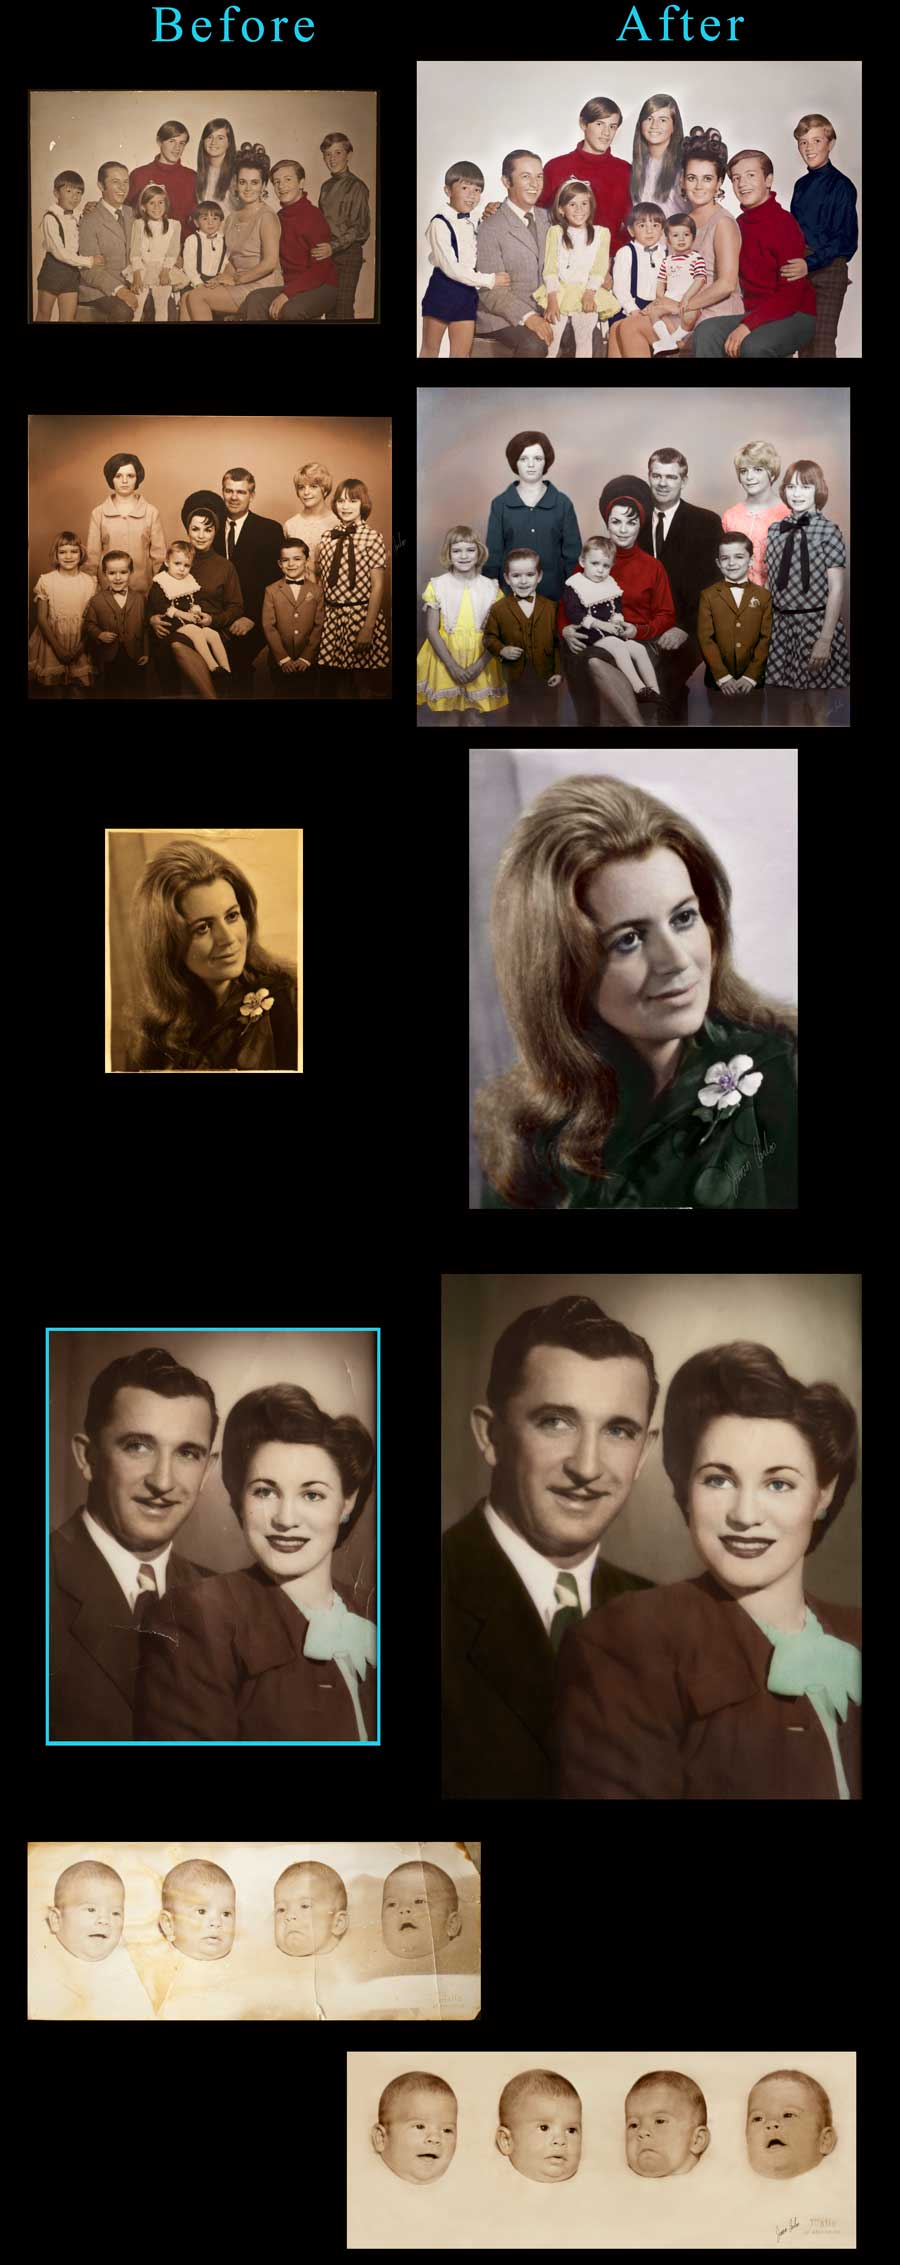 Photo Restoration by Juan Carlos of Entertainment Photos Award wining photographer and digital artist at epoof